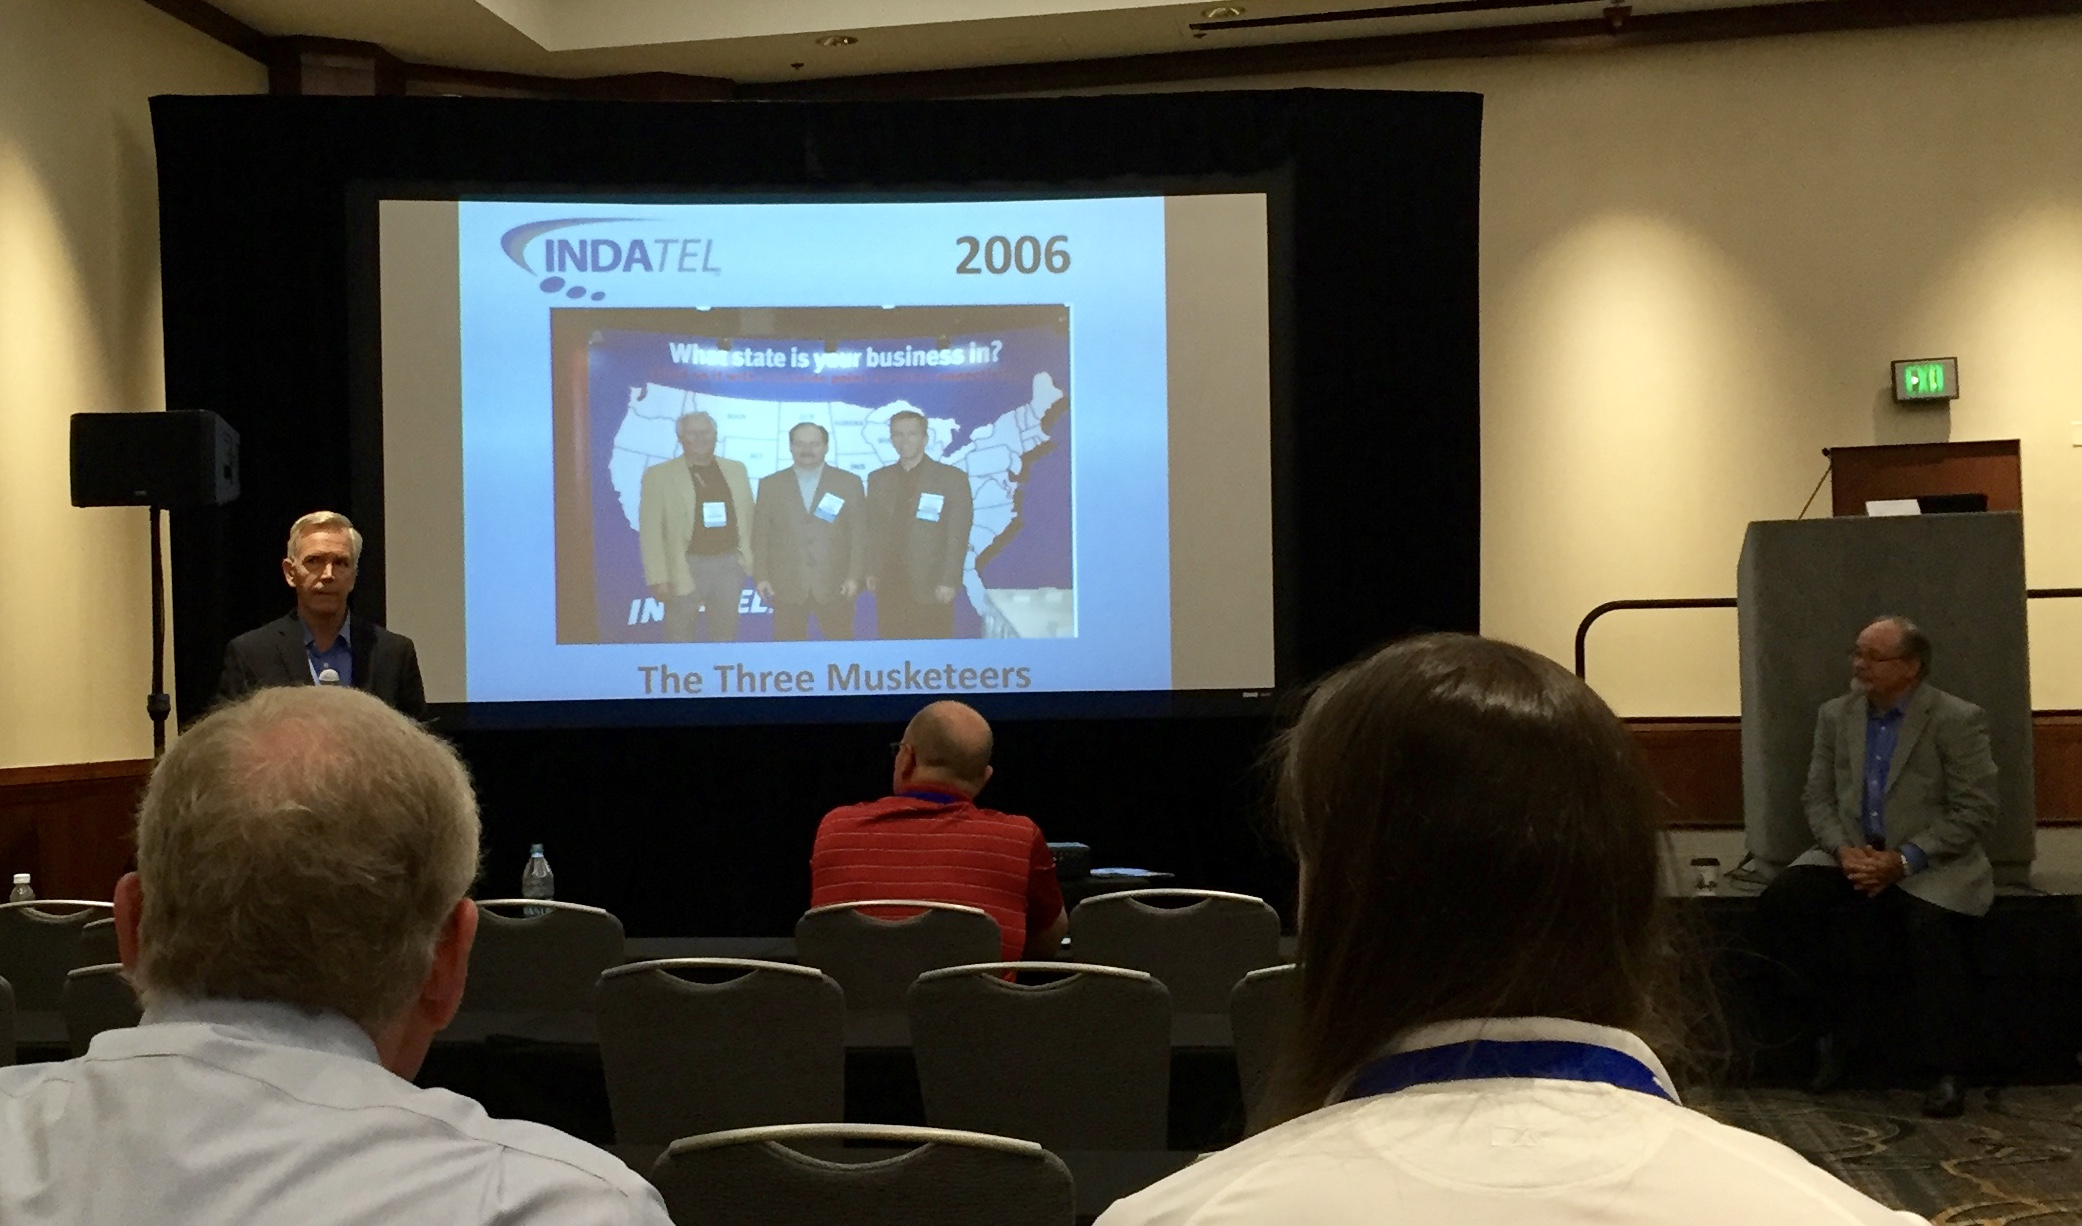 INDATEL Celebrates 10 Years at Summer Symposium